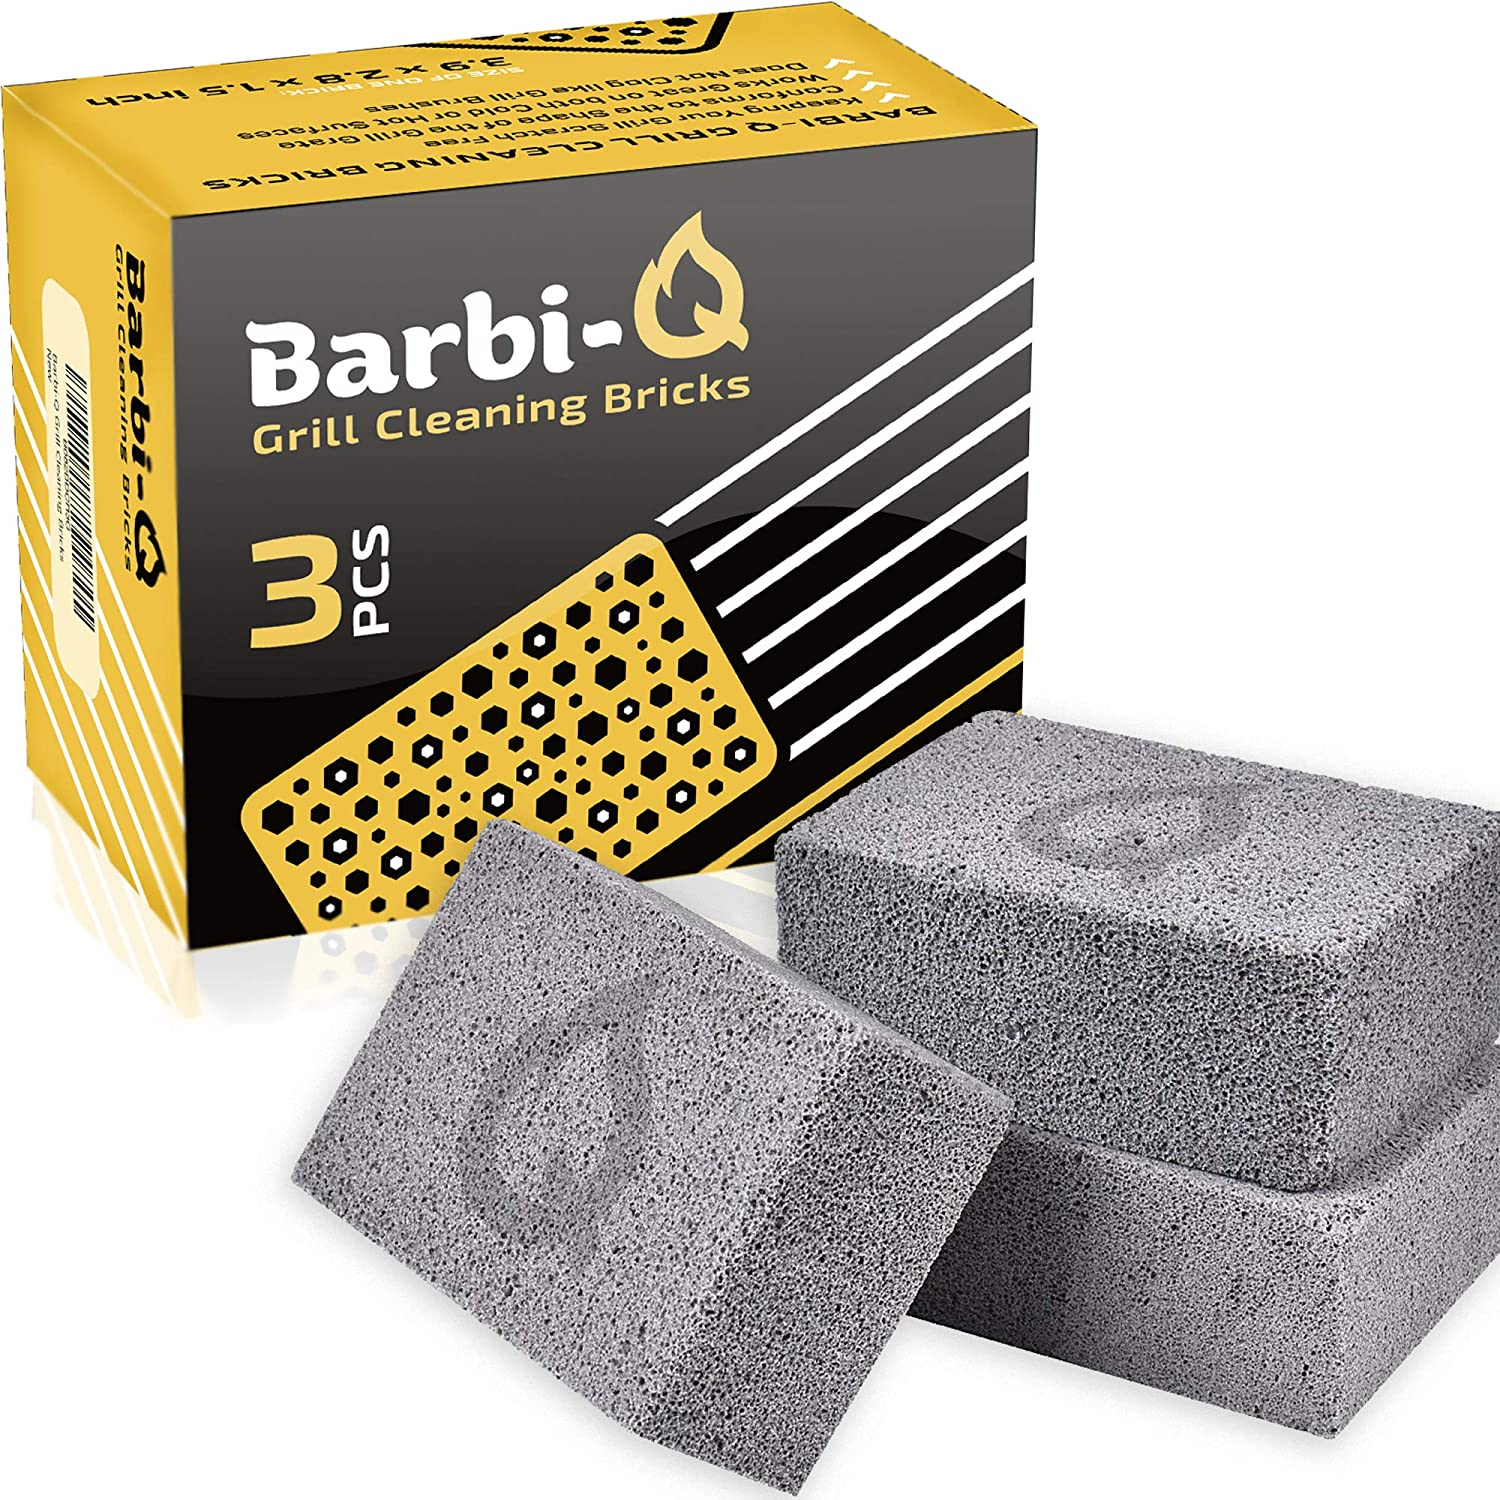 Barbi-Q Grill Cleaning Bricks - Grill Stone | Griddle Cleaner Block - Pumice Stone Brick Cleaner for BBQ | Grills | Racks | Flat Top Grill | Pool | Toilet Cleaner - (Pack of 3)